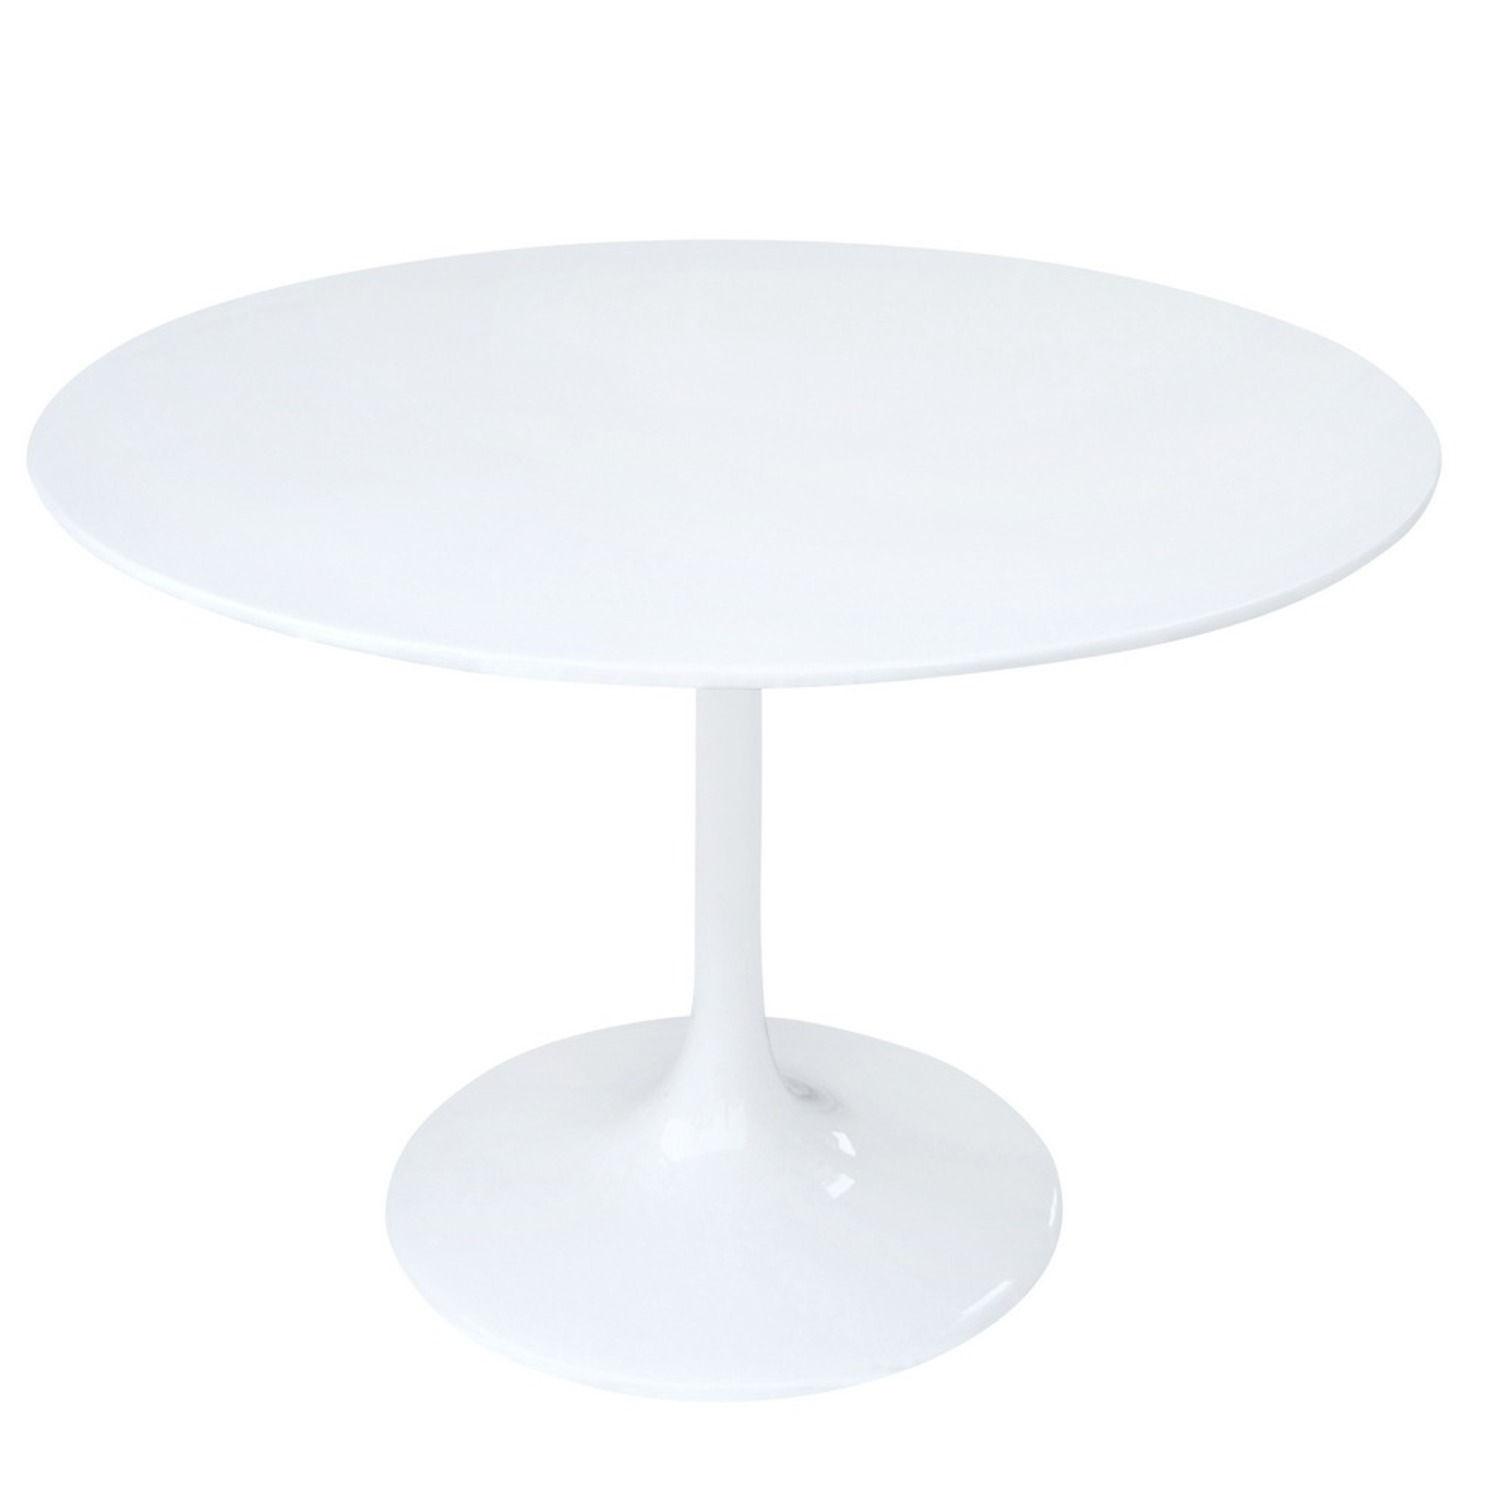 Tulip Style Dining Table In White Fiberglass - image-1